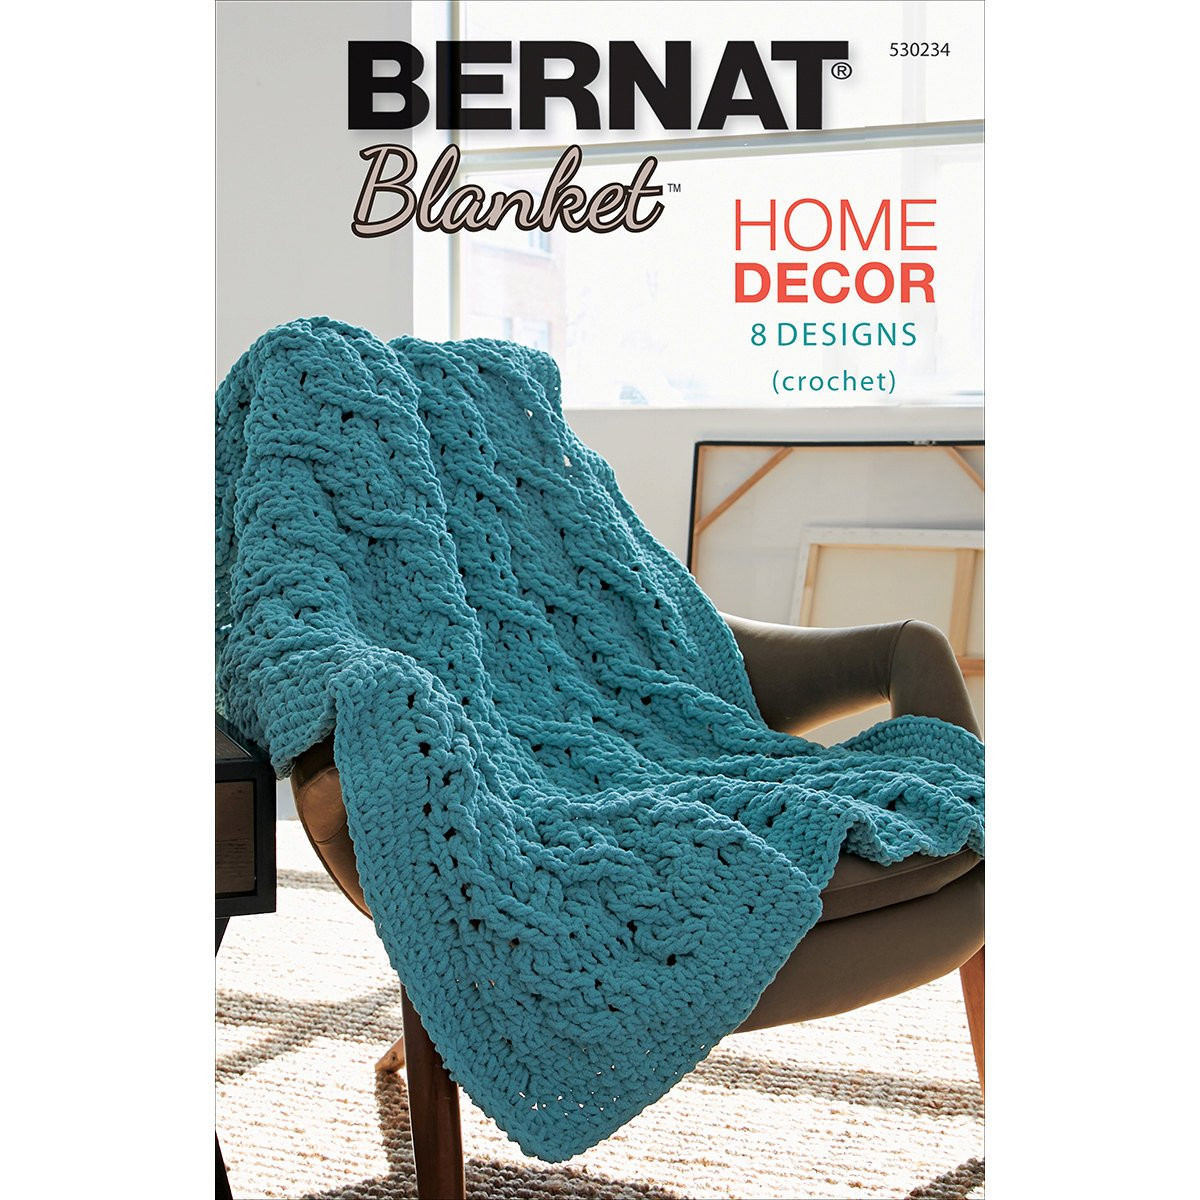 Bernat Maker Home Dec Yarn New Bernat Blanket Yarn Home Decor Book 8 Crochet Patterns Using Of Charming 45 Ideas Bernat Maker Home Dec Yarn